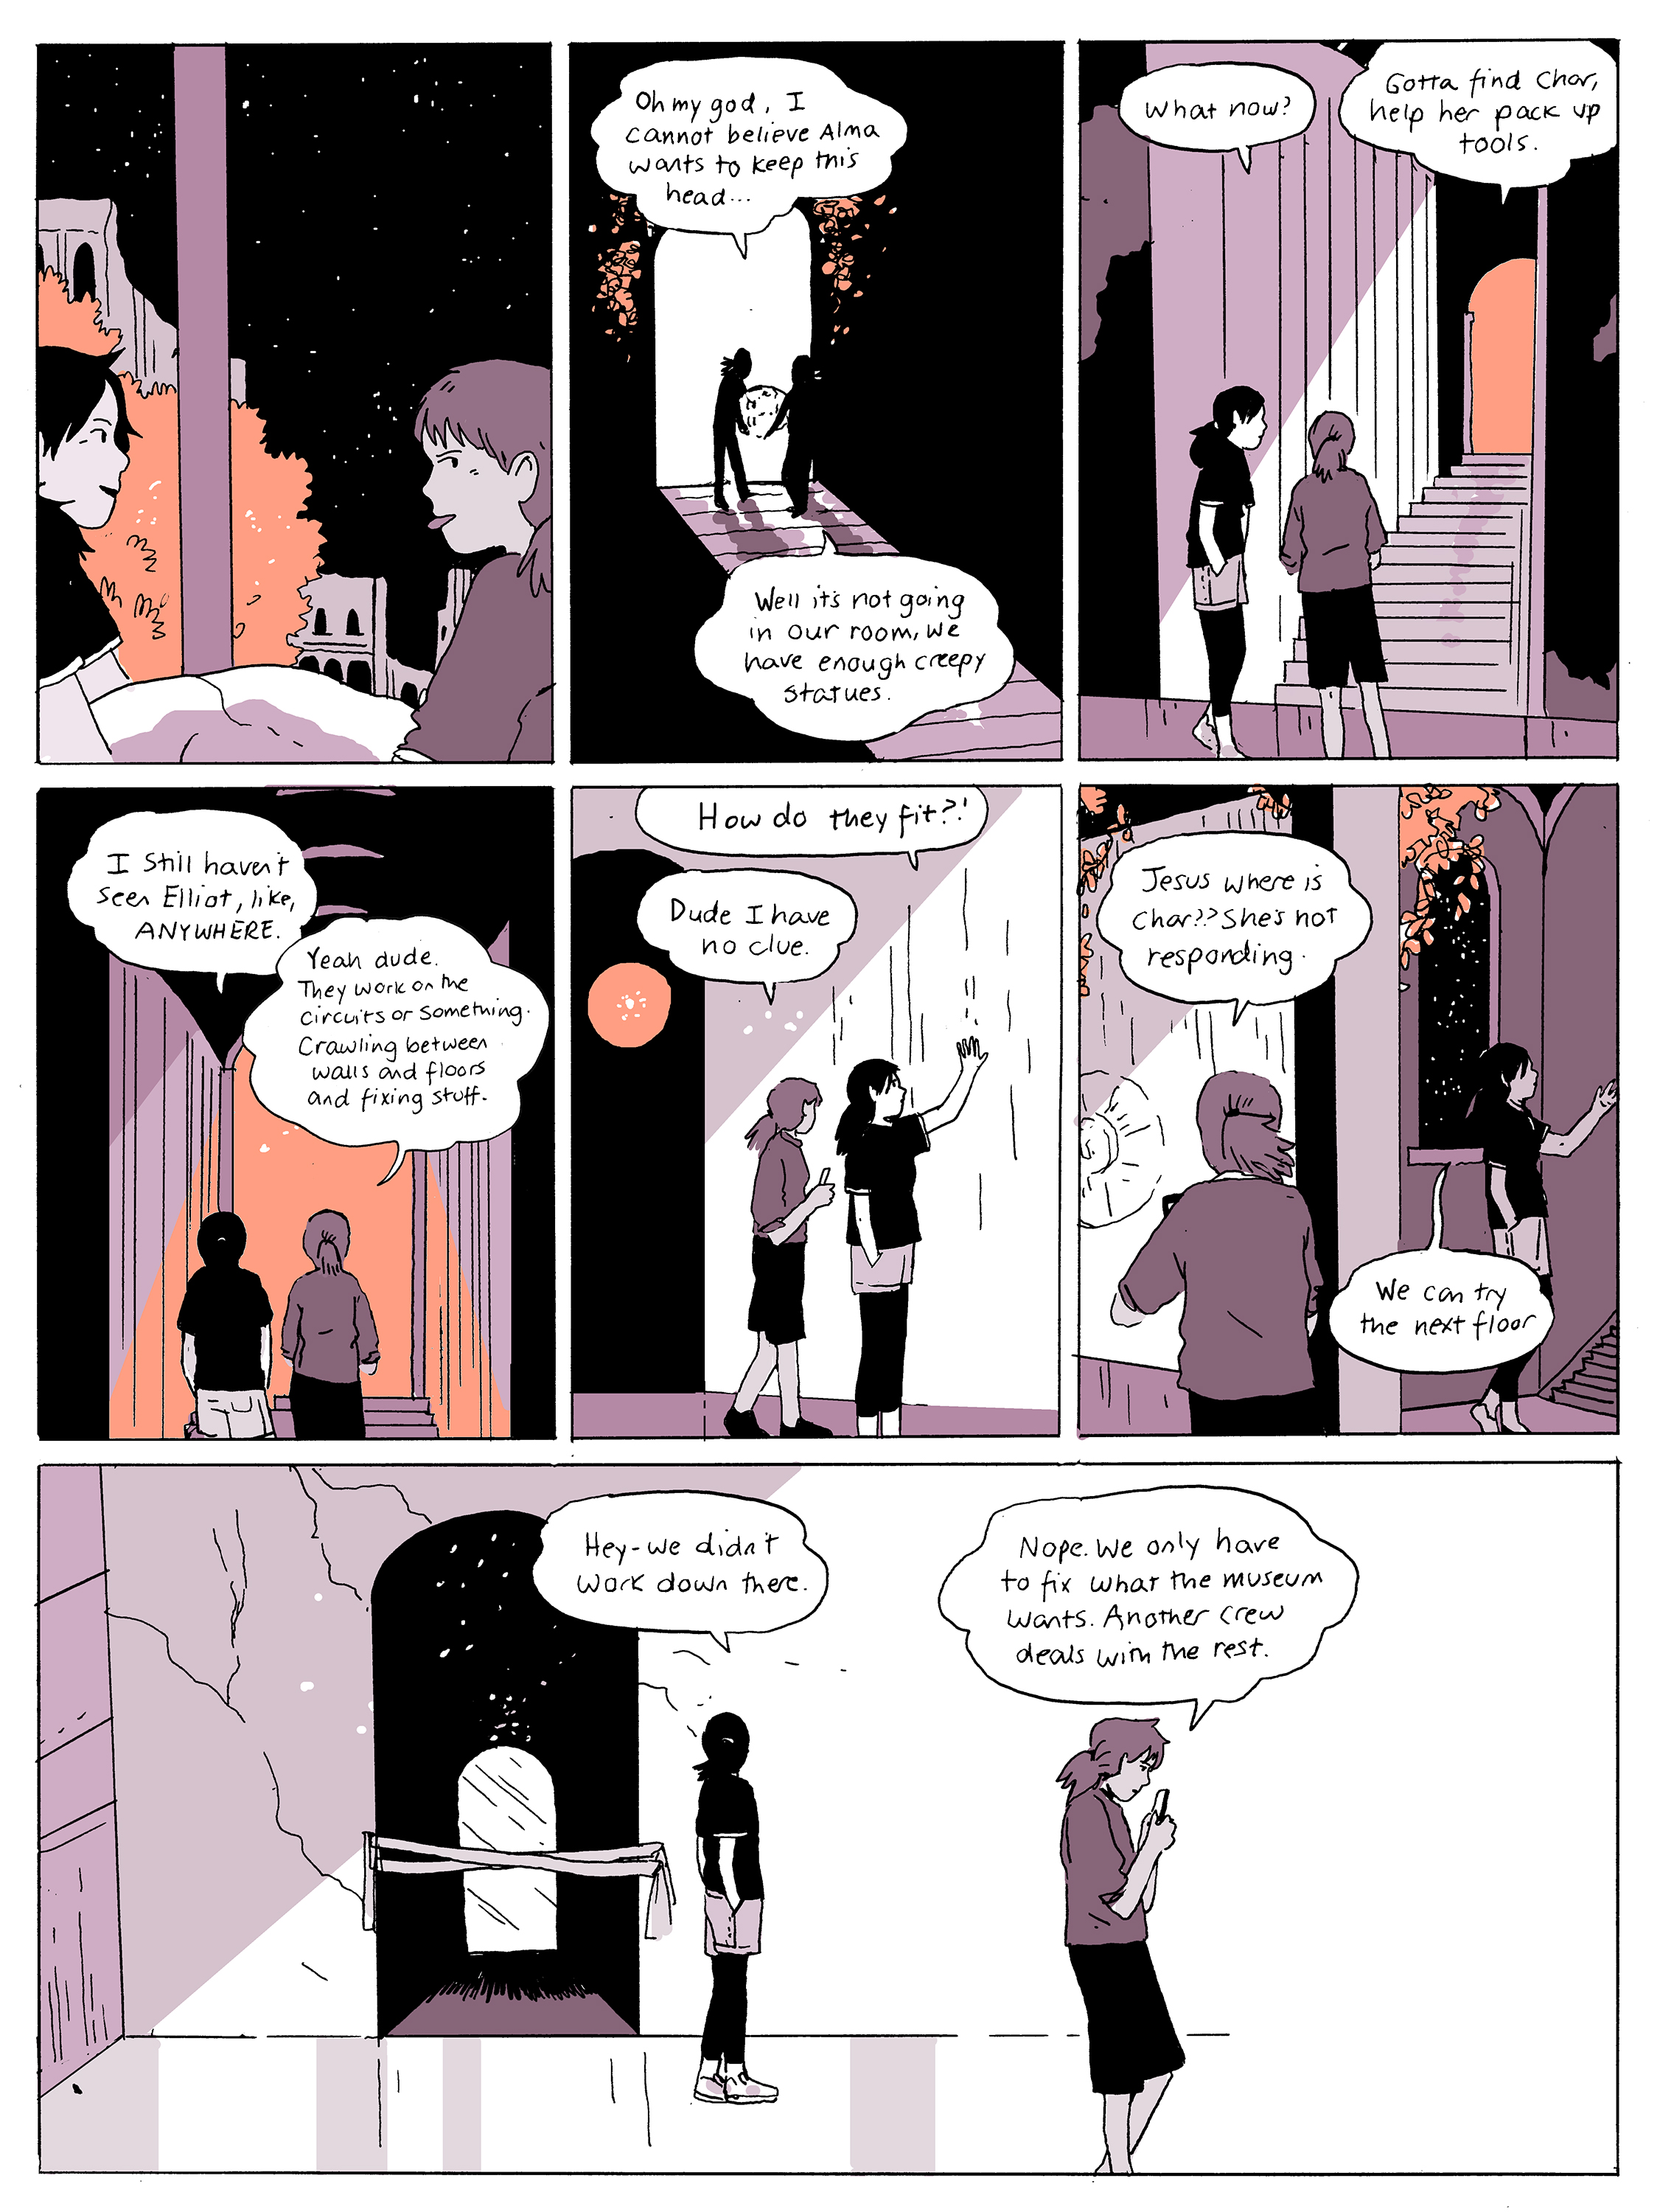 chapter04_page04.jpg